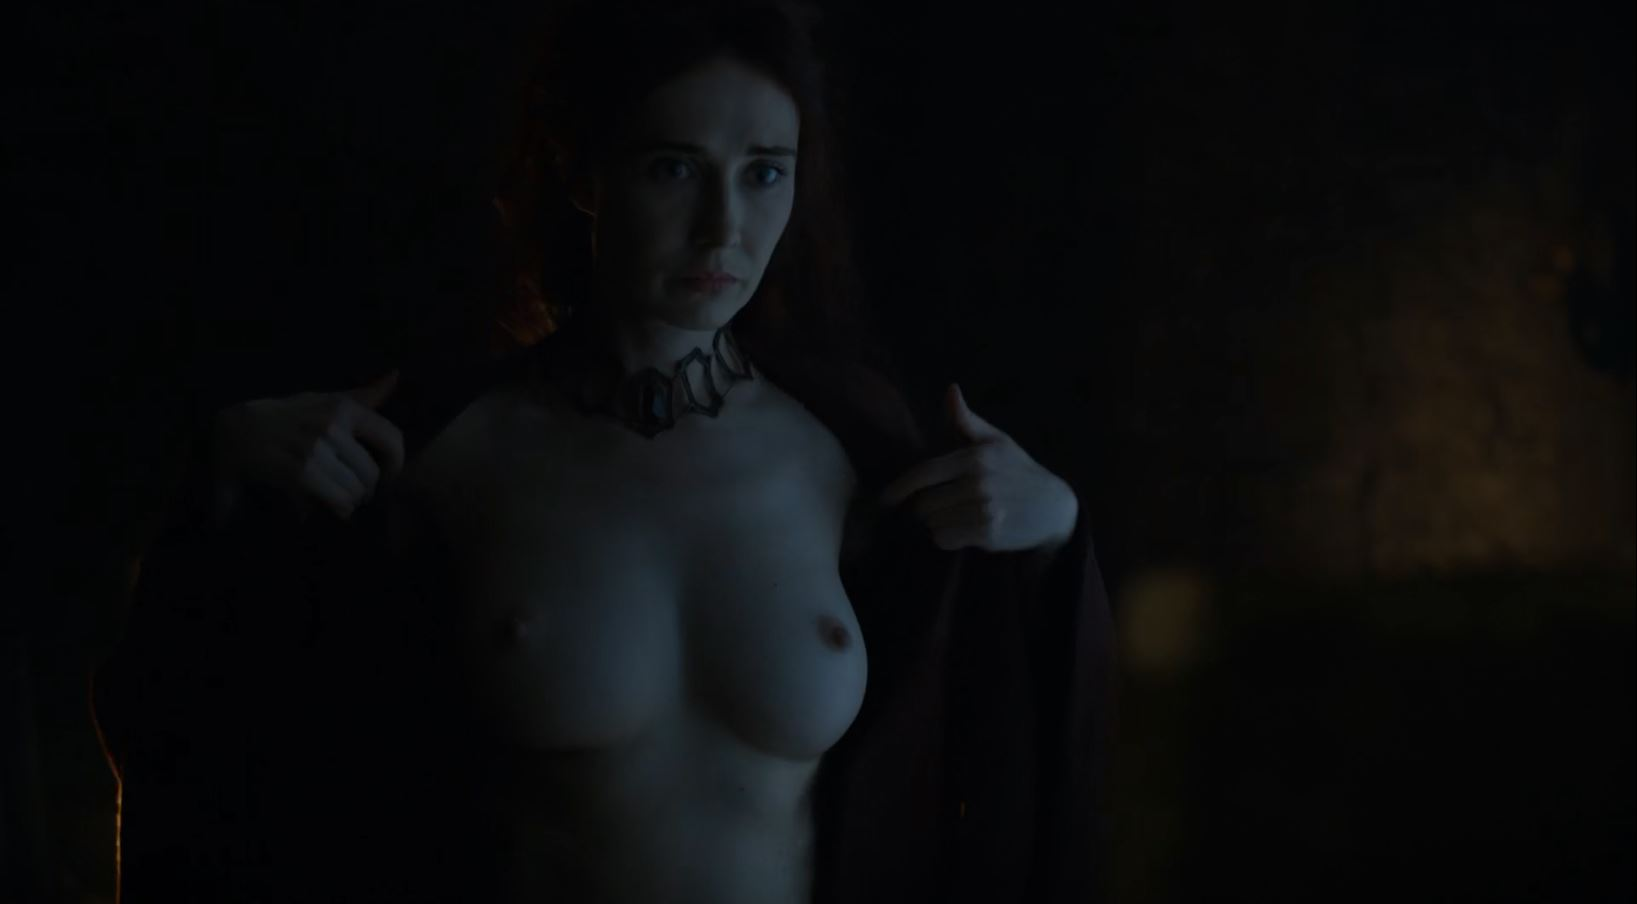 Melisandre nude tits. Game Of Thrones S6Ep1 The Red Woman Review